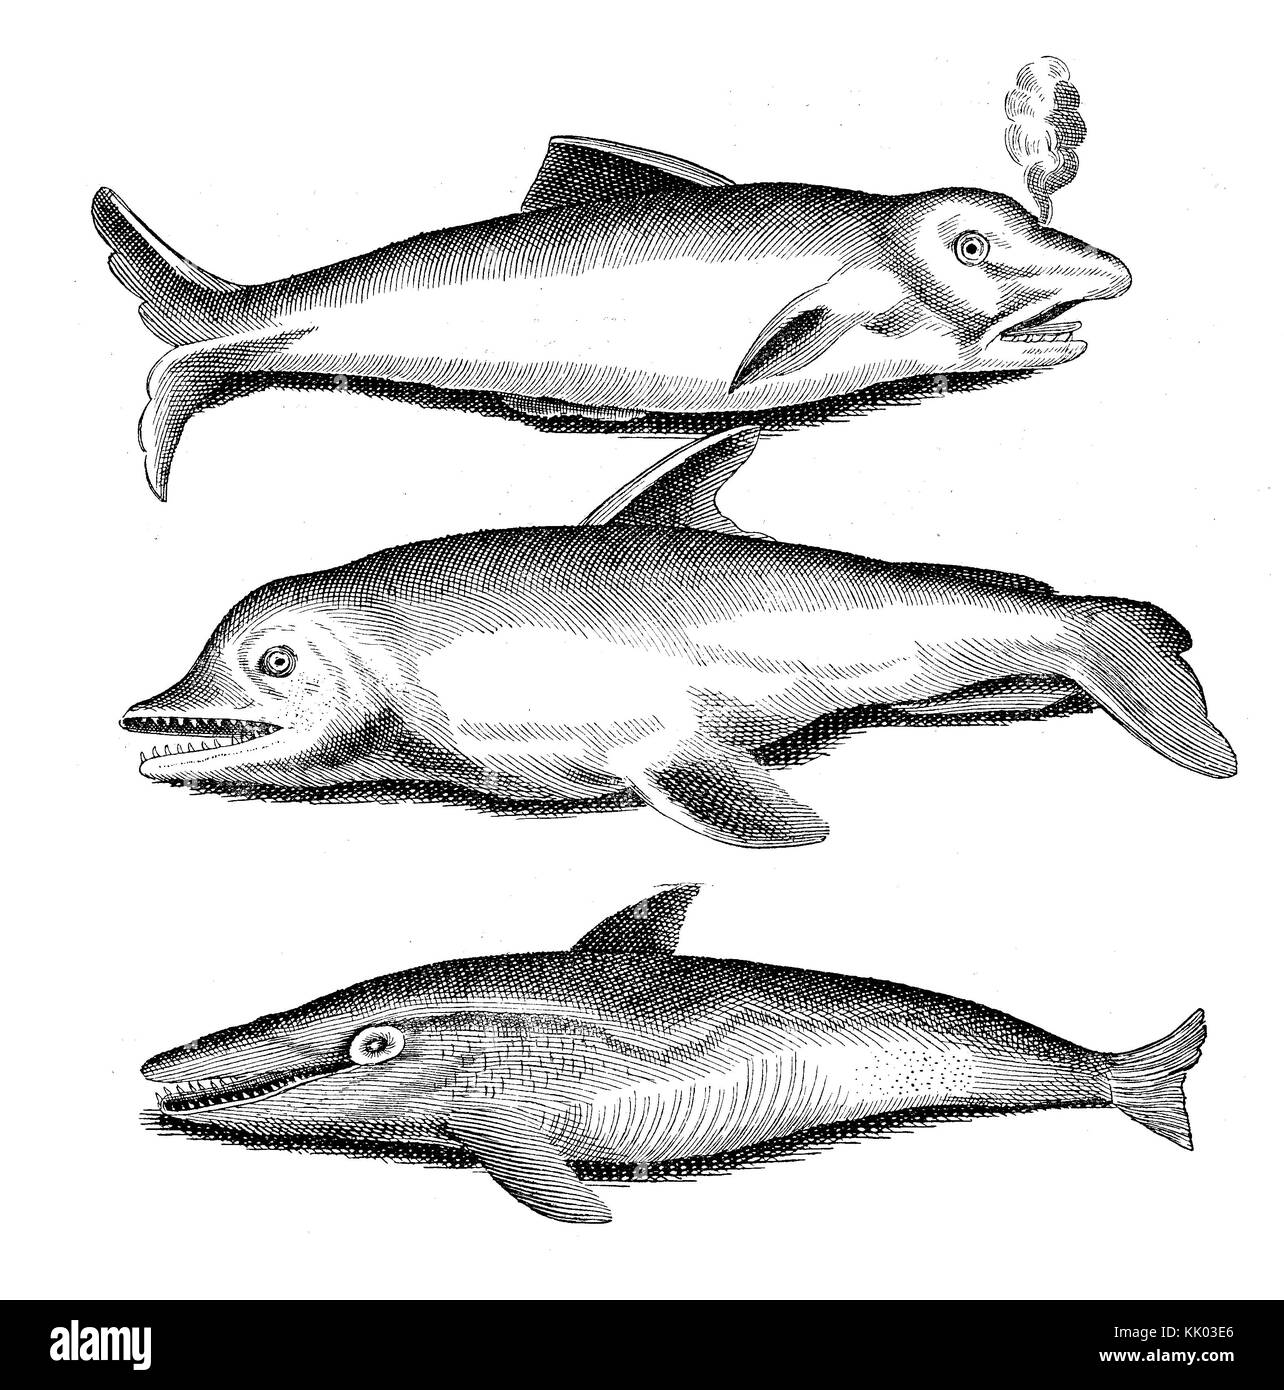 Aquatic life: vintage engraving of dolphin species, year 1718 - Stock Image